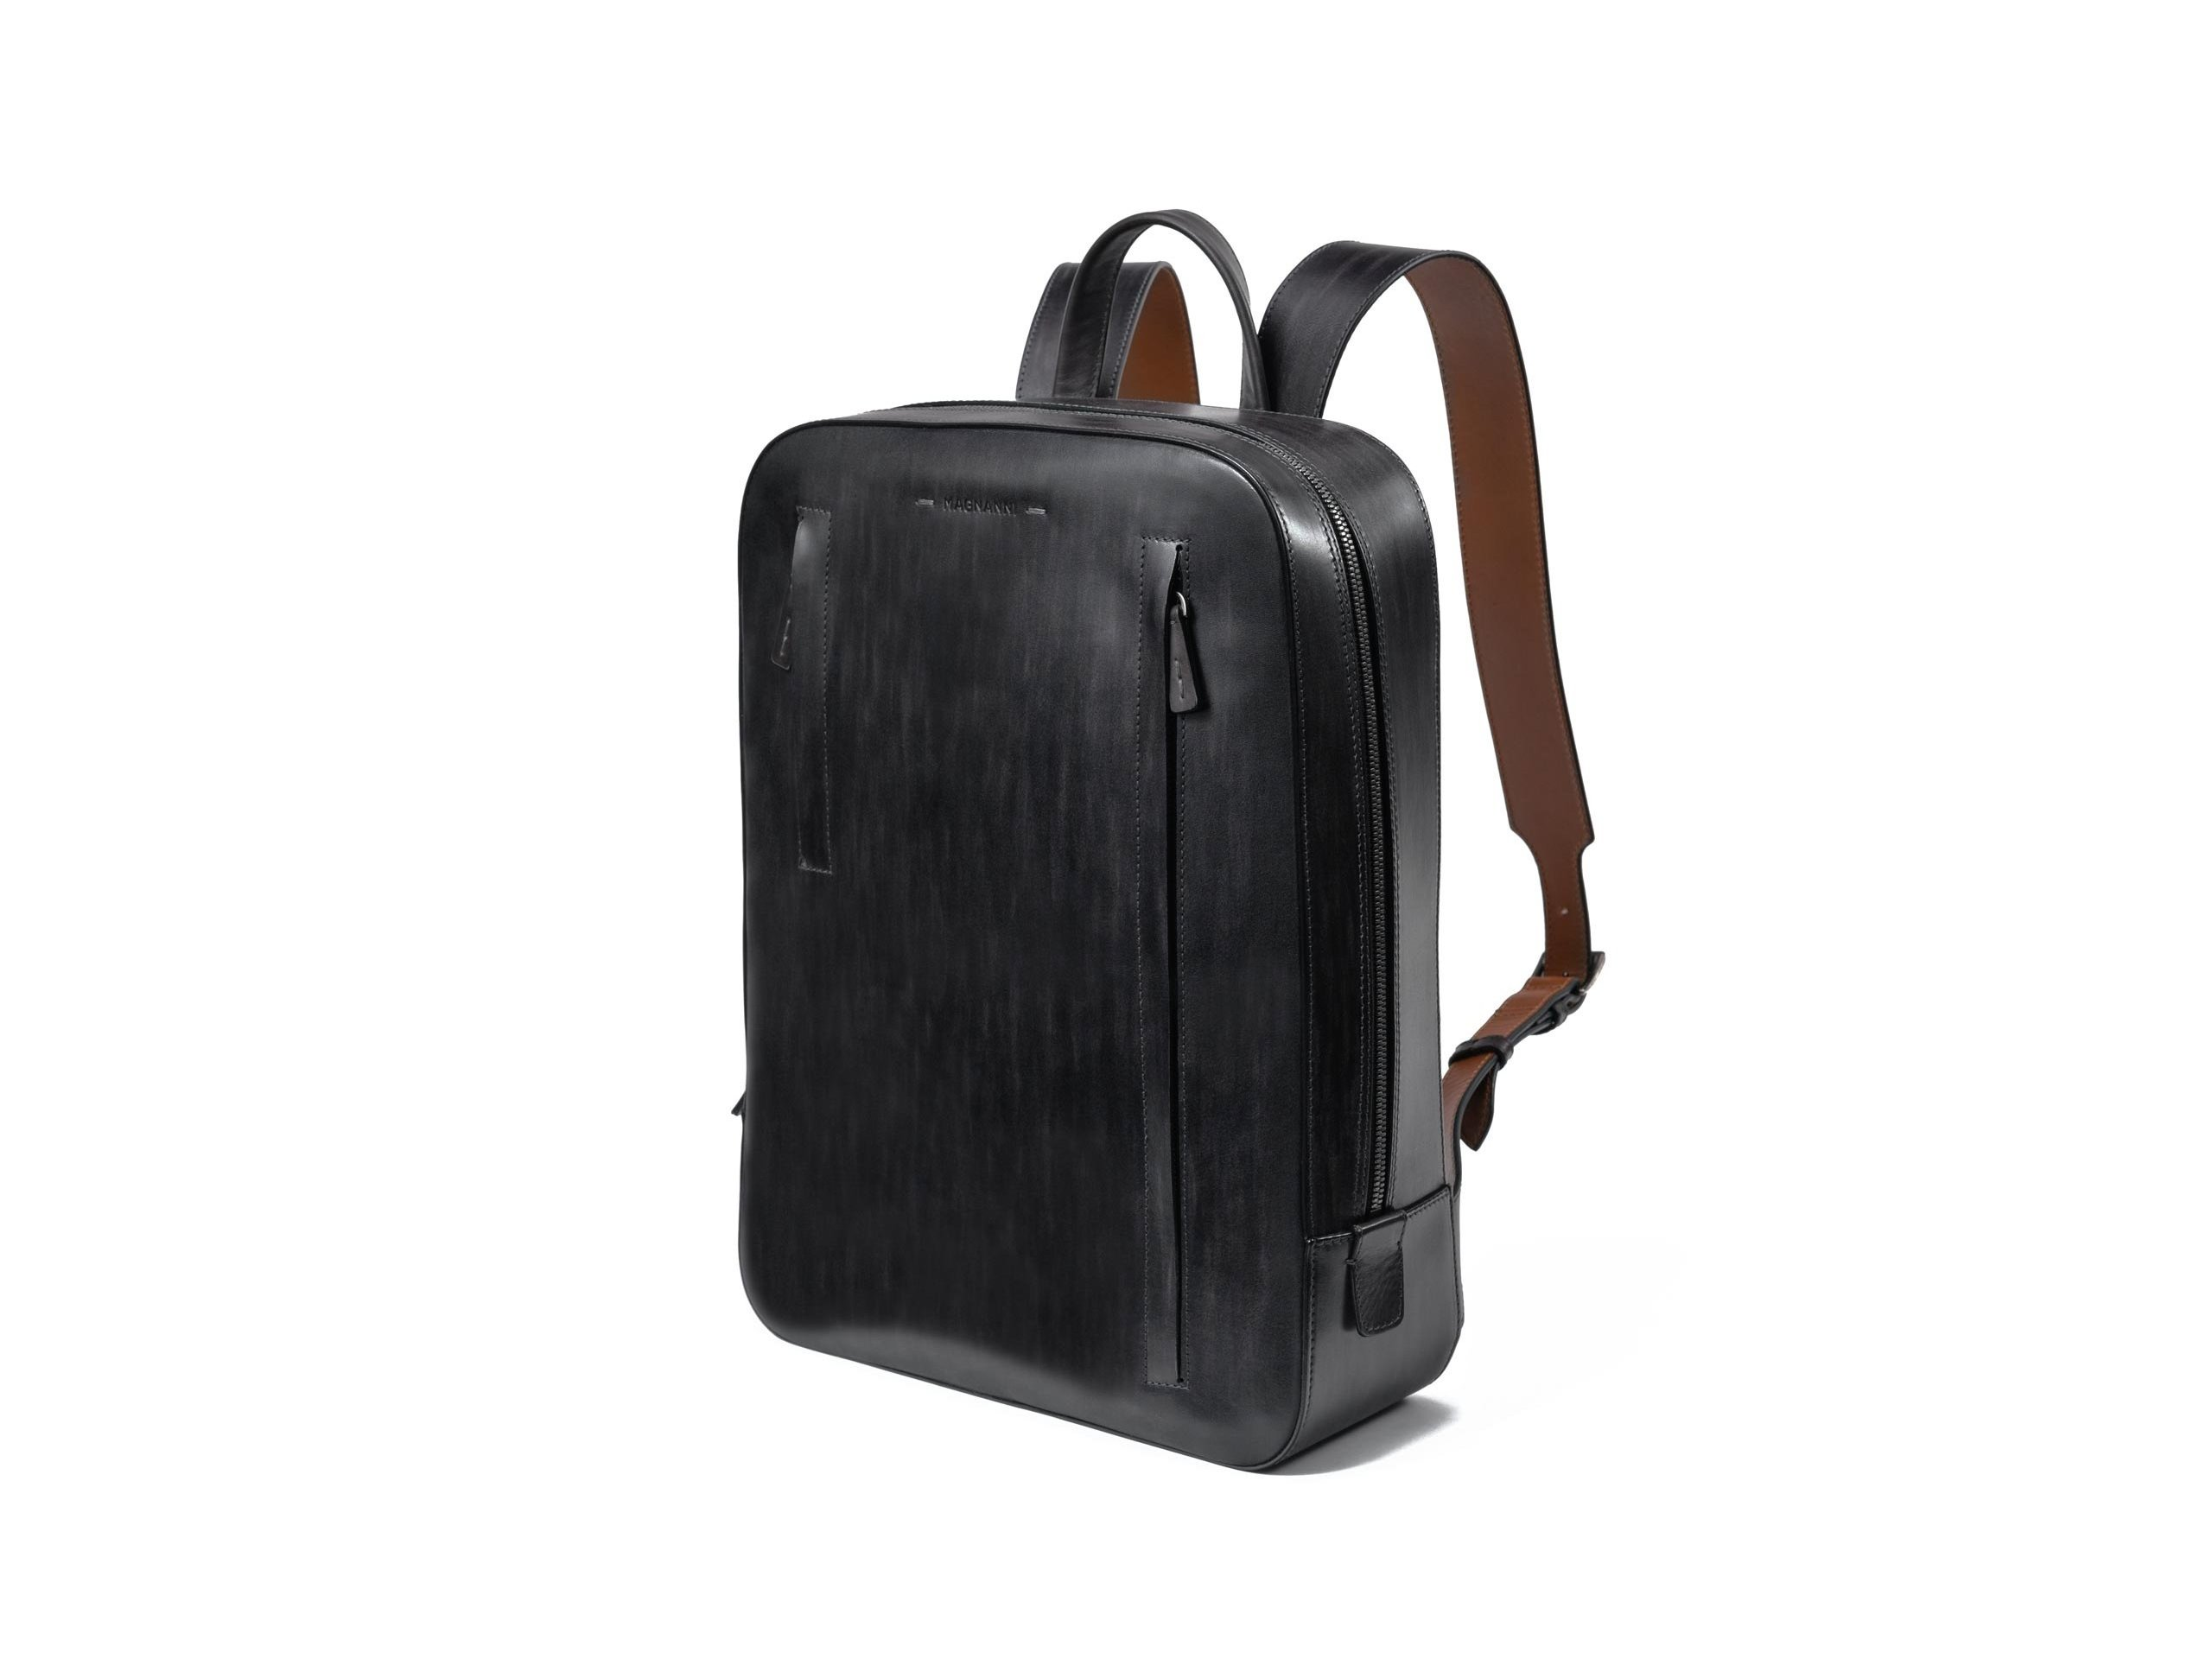 Grey leather bag for men - Magnanni